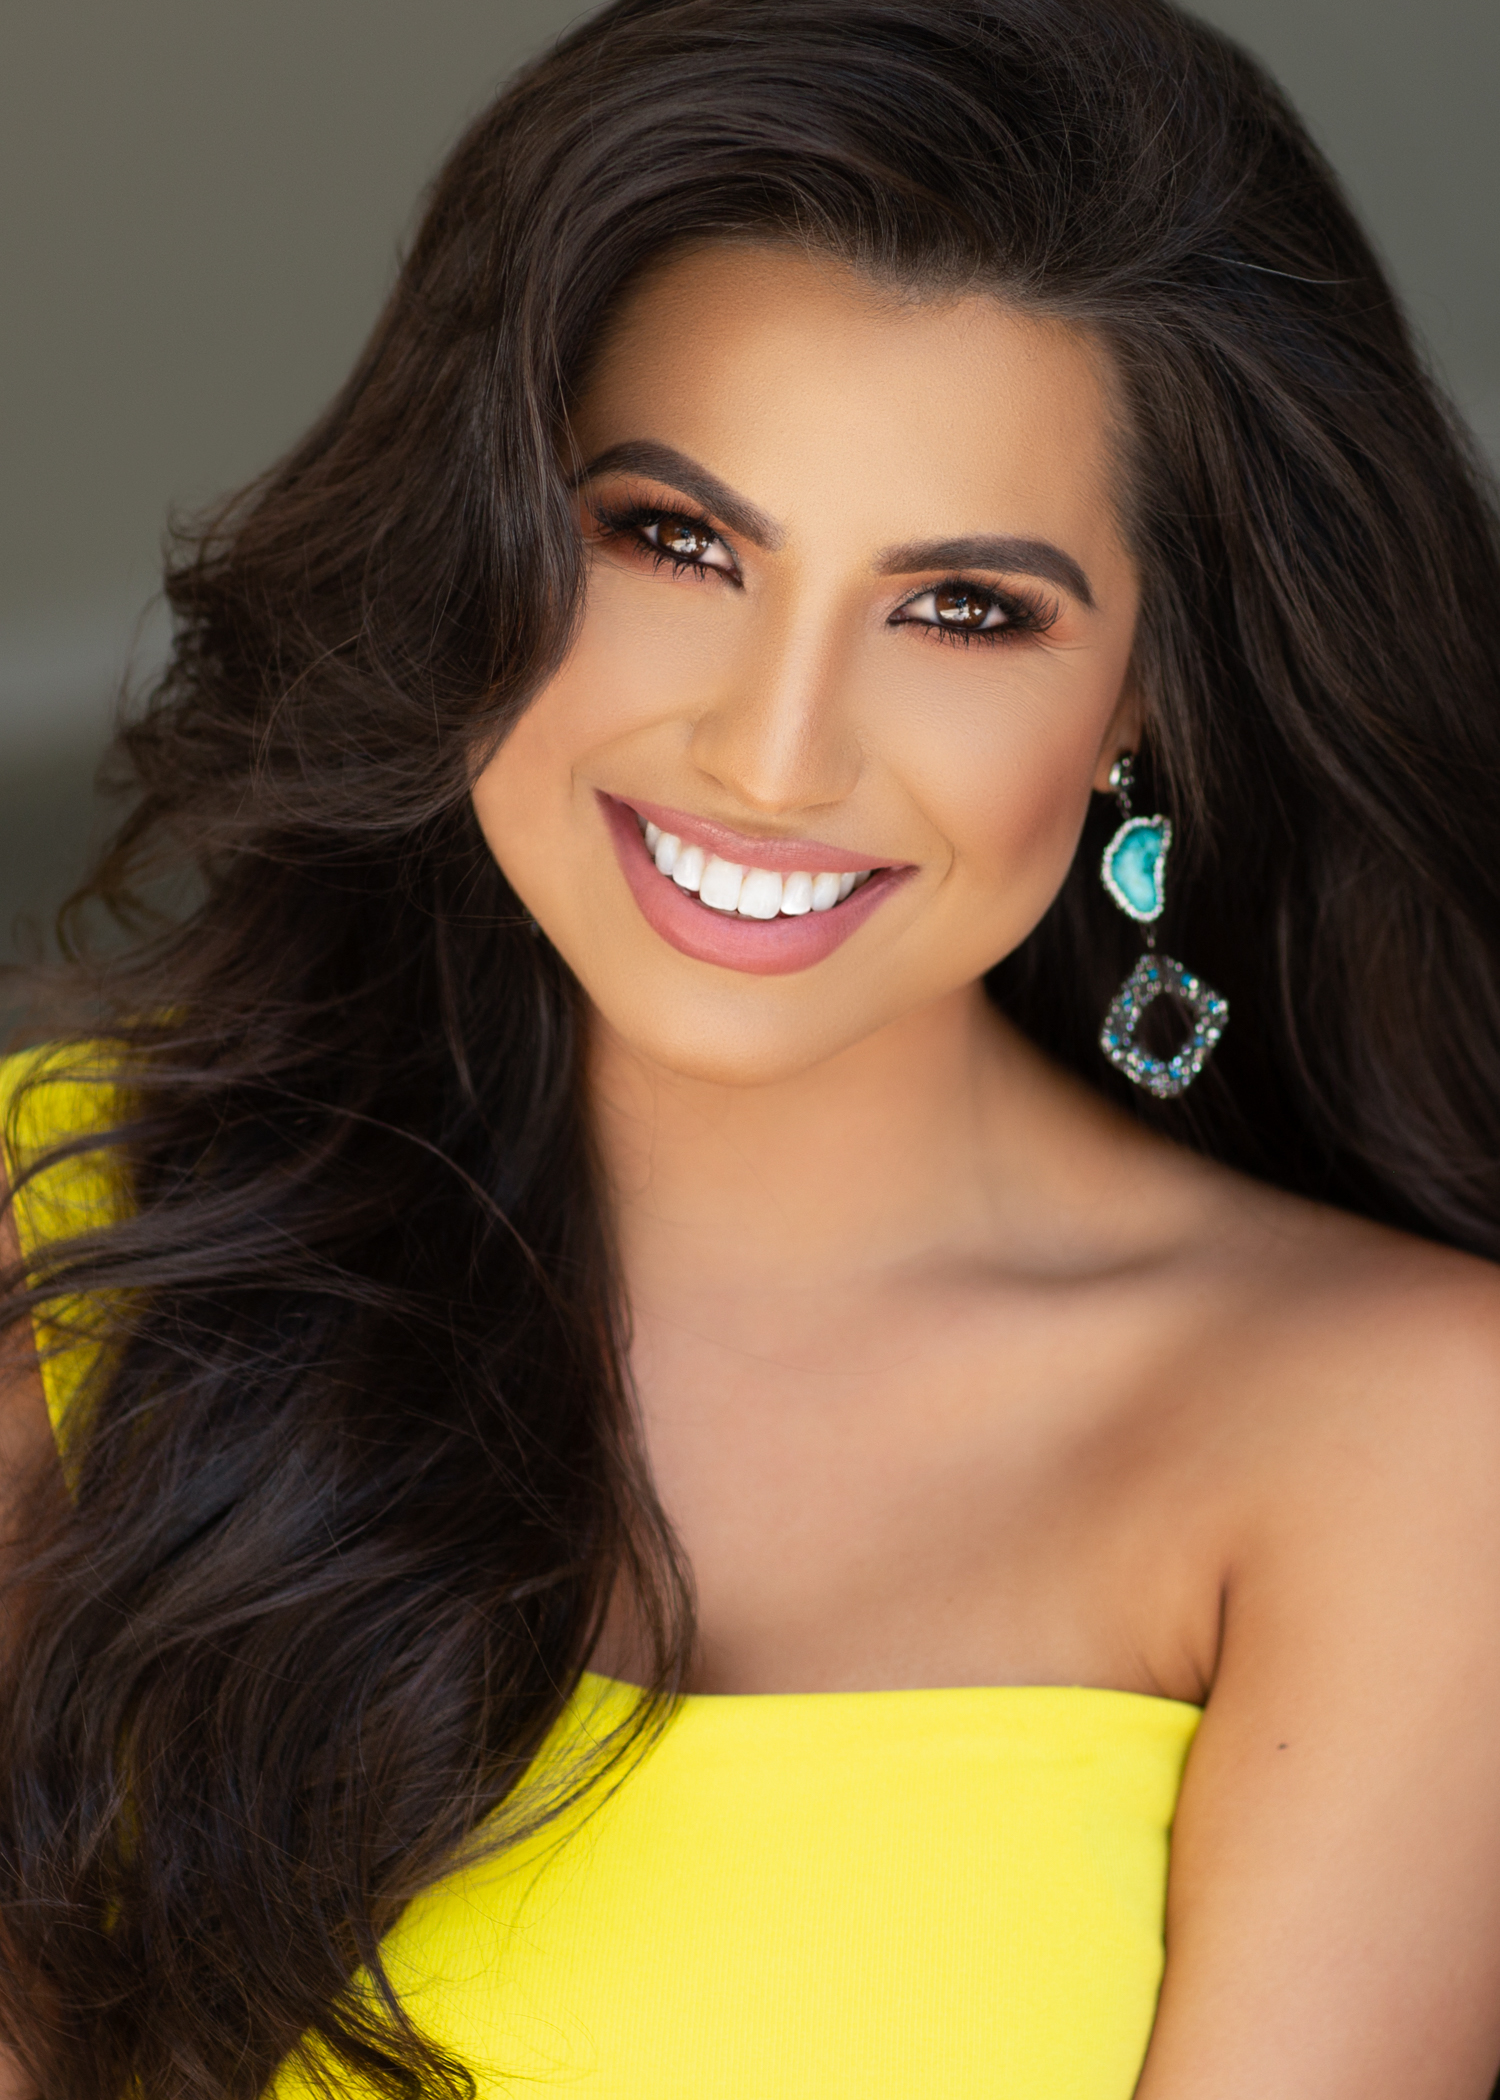 Mrs. Texas International 2019 - Rewriting Children's FuturesHelping children overcome traumatic events such as homelessness, abuse and bullying.